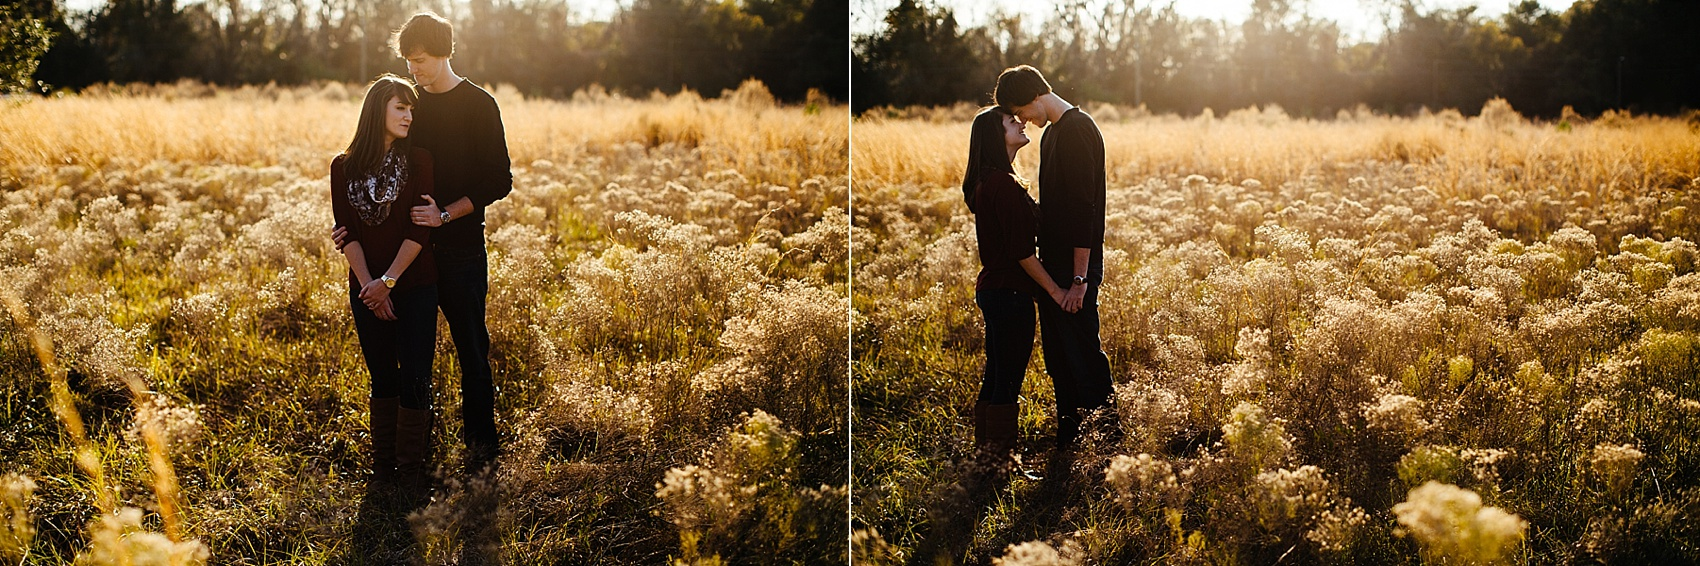 jake-and-katie-engagement-photos-3